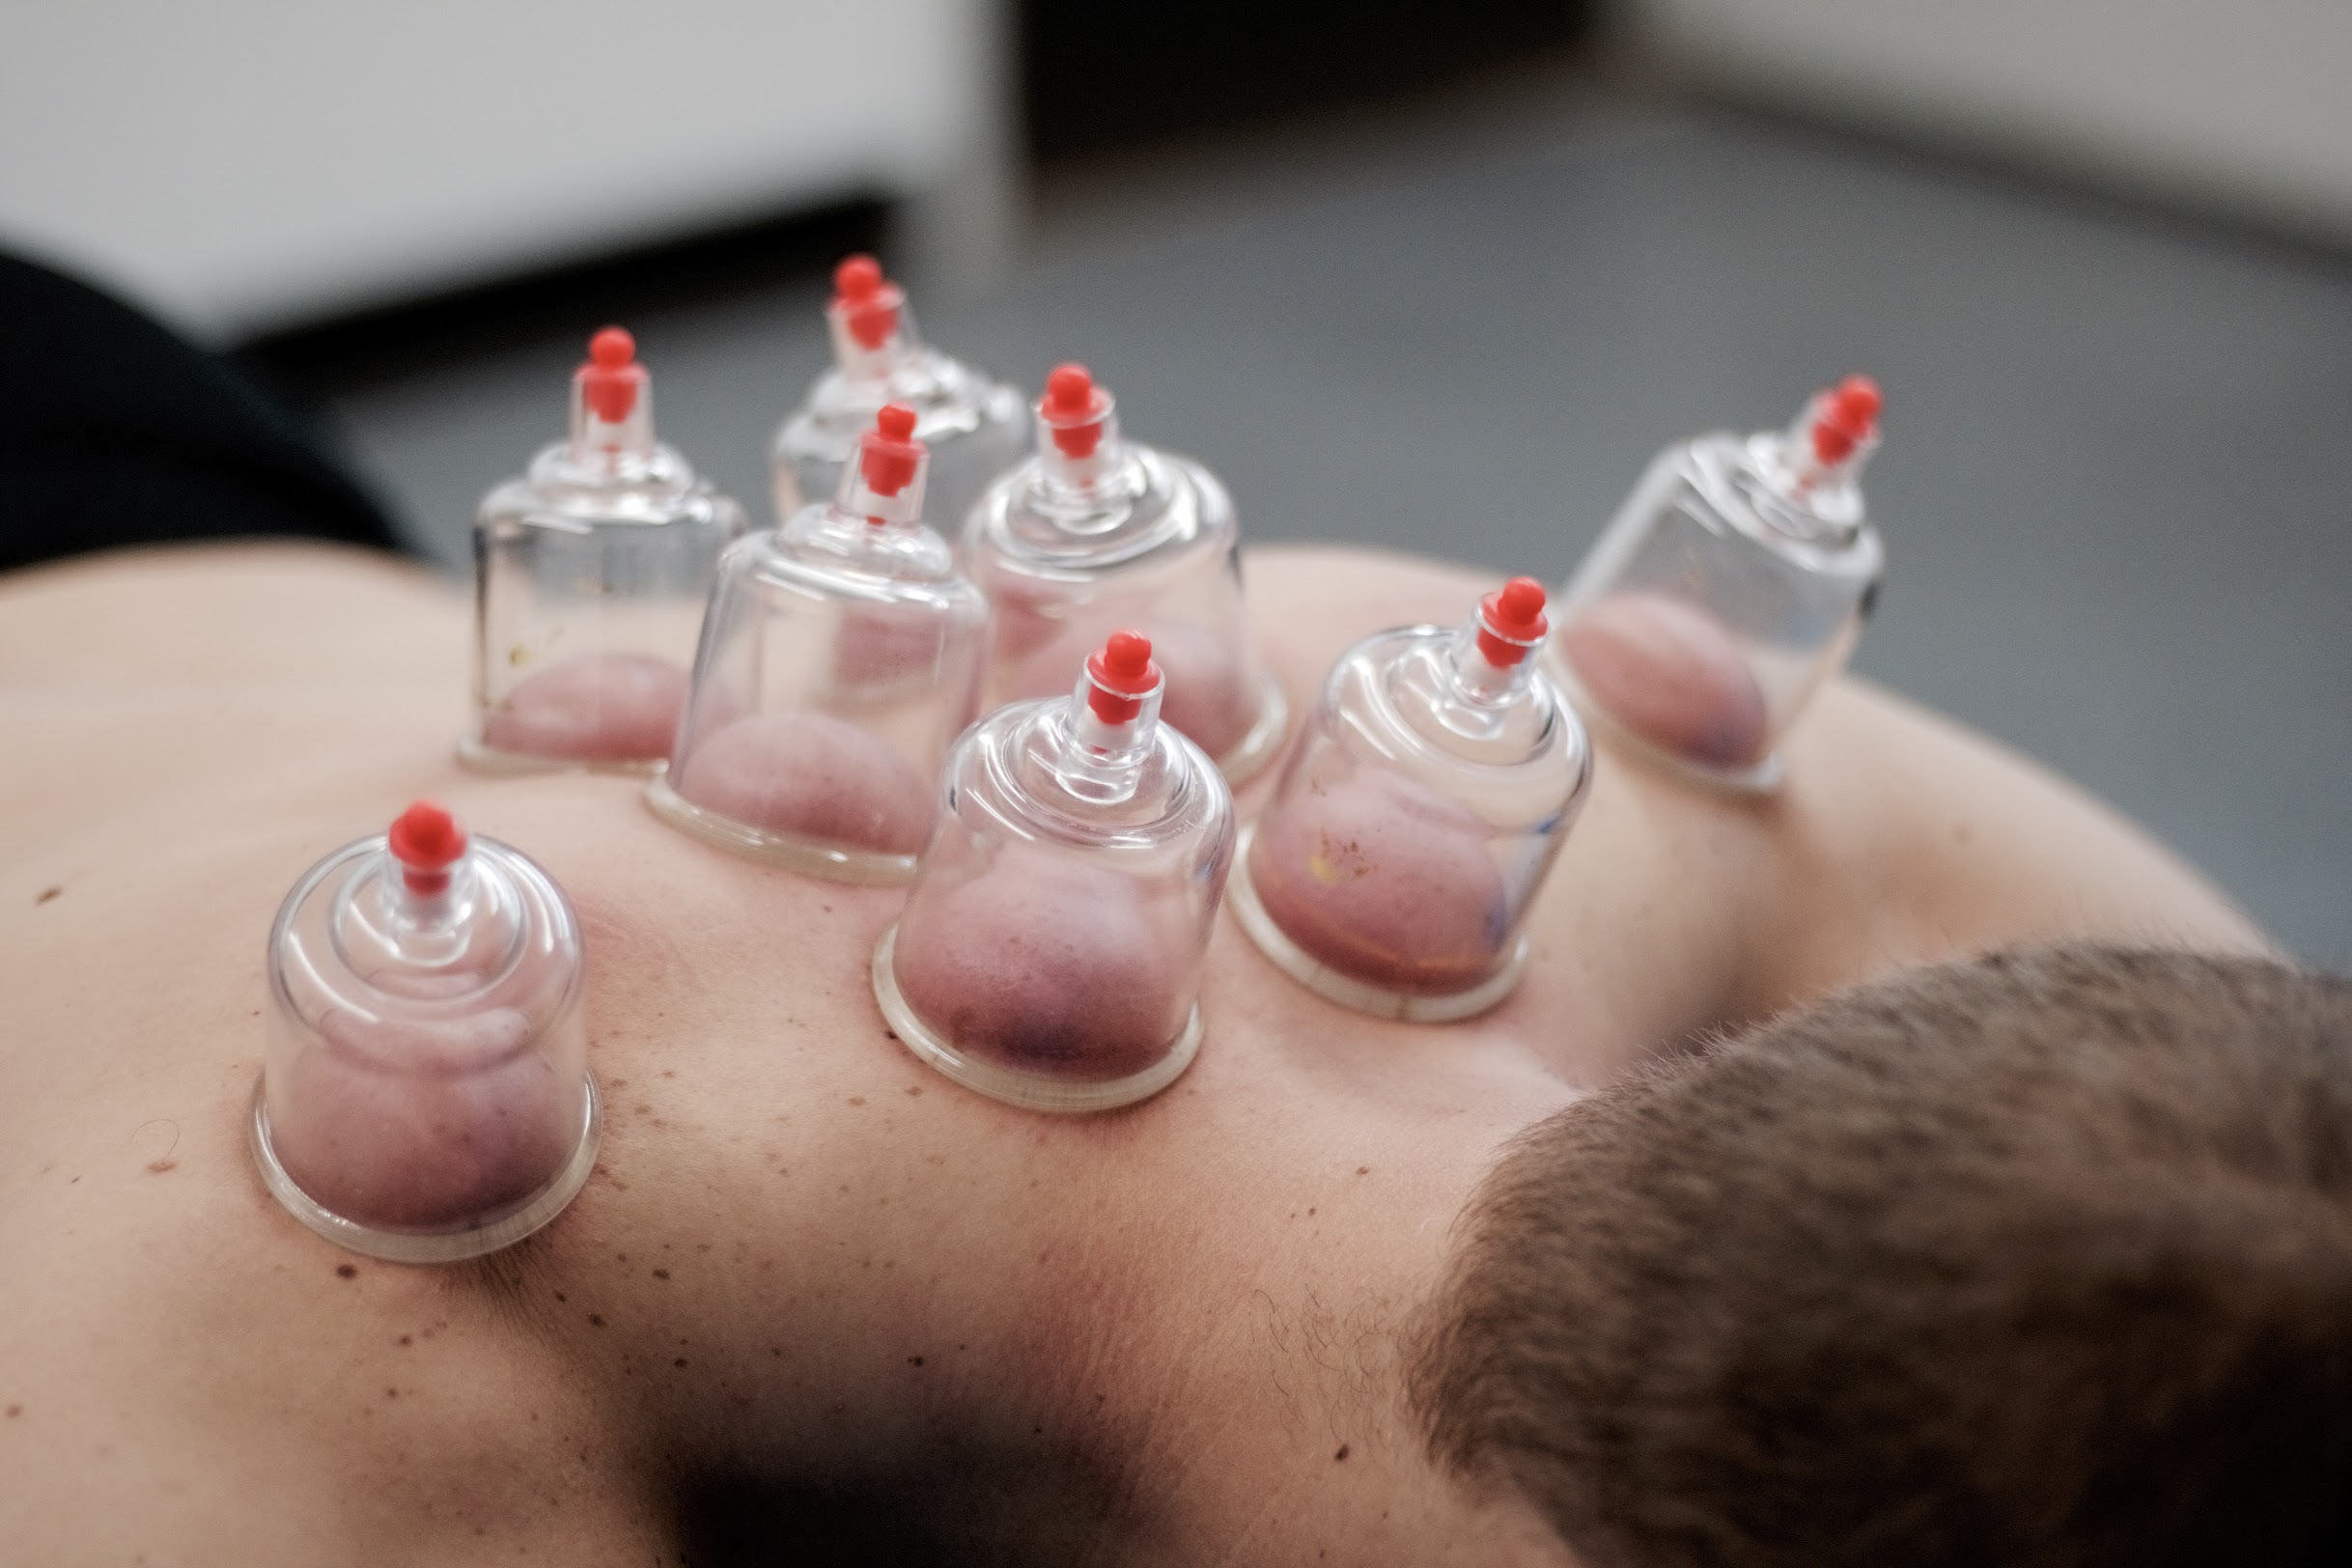 Systemic Cupping